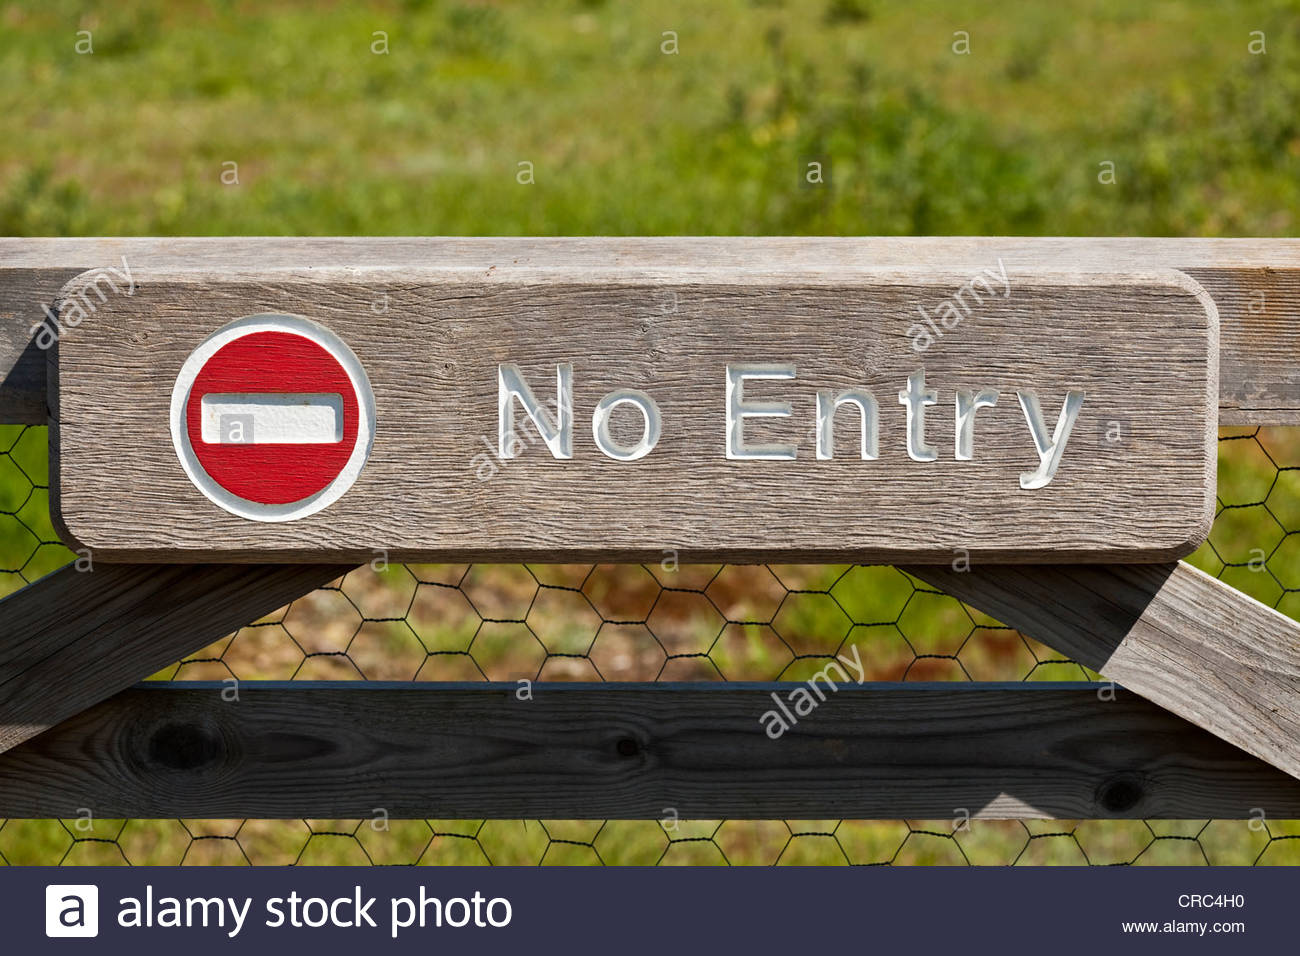 No entry sign on a gate - Stock Image